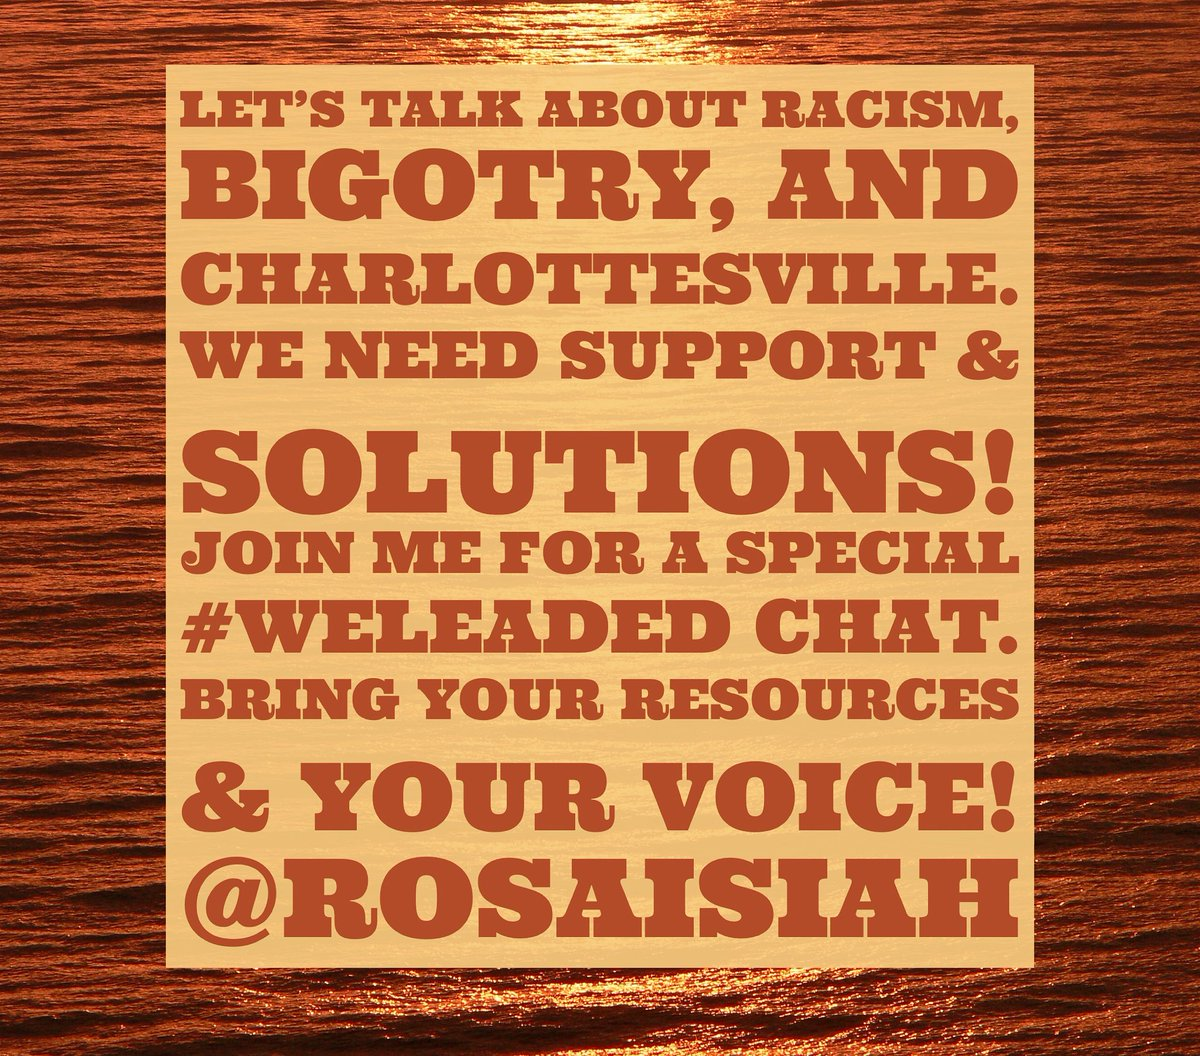 We have much to discuss,PLN. Join me- #WeLeadEd chat on a special day/time: Sun 8/13 7-730PM PST Silence is not an option #Educolor #WomenEd <br>http://pic.twitter.com/k4QcnNNvPL